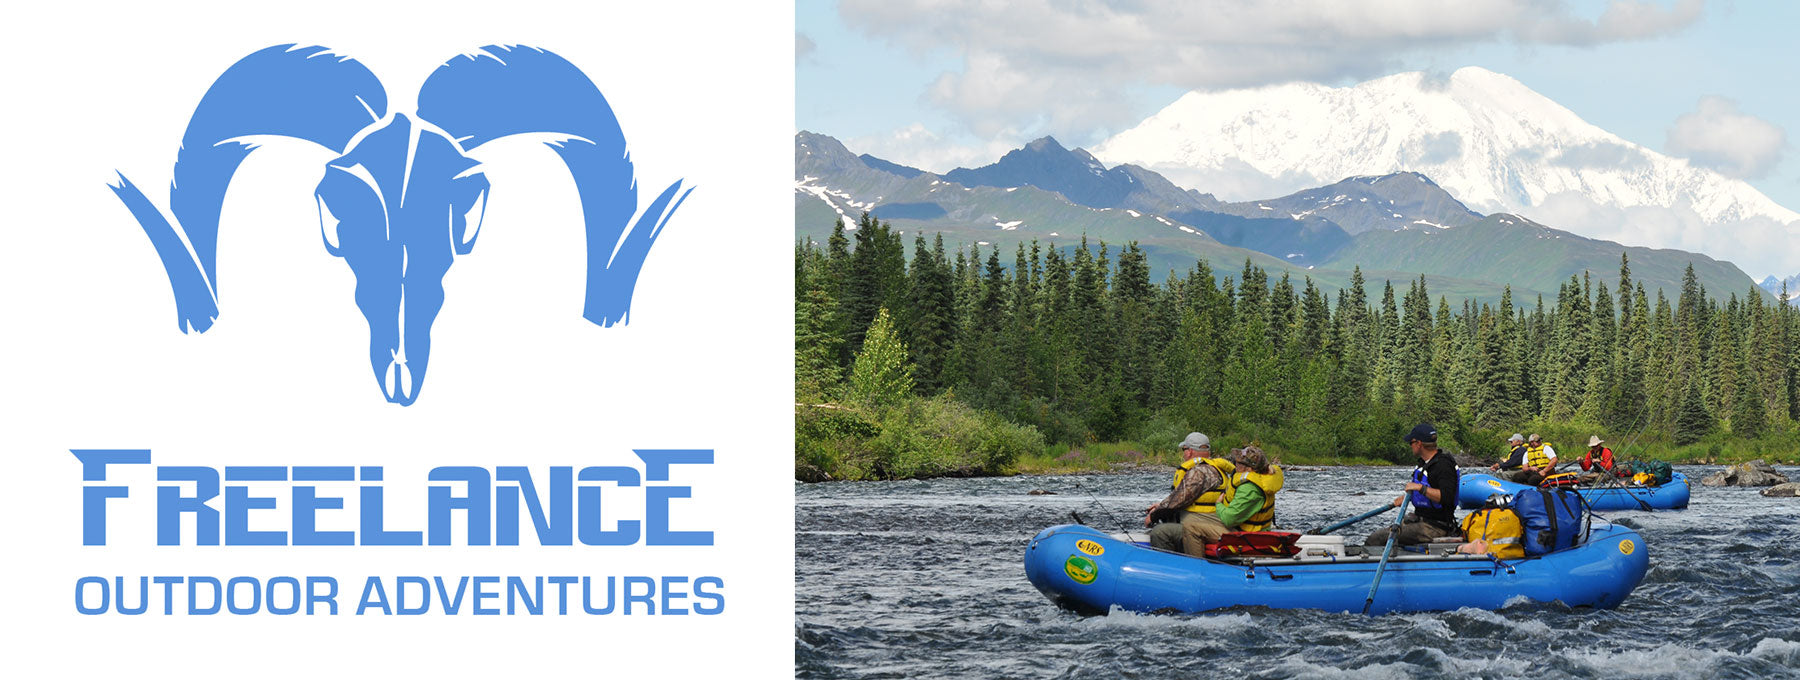 Freelance Outdoor Adventures - Freelance Float Trips